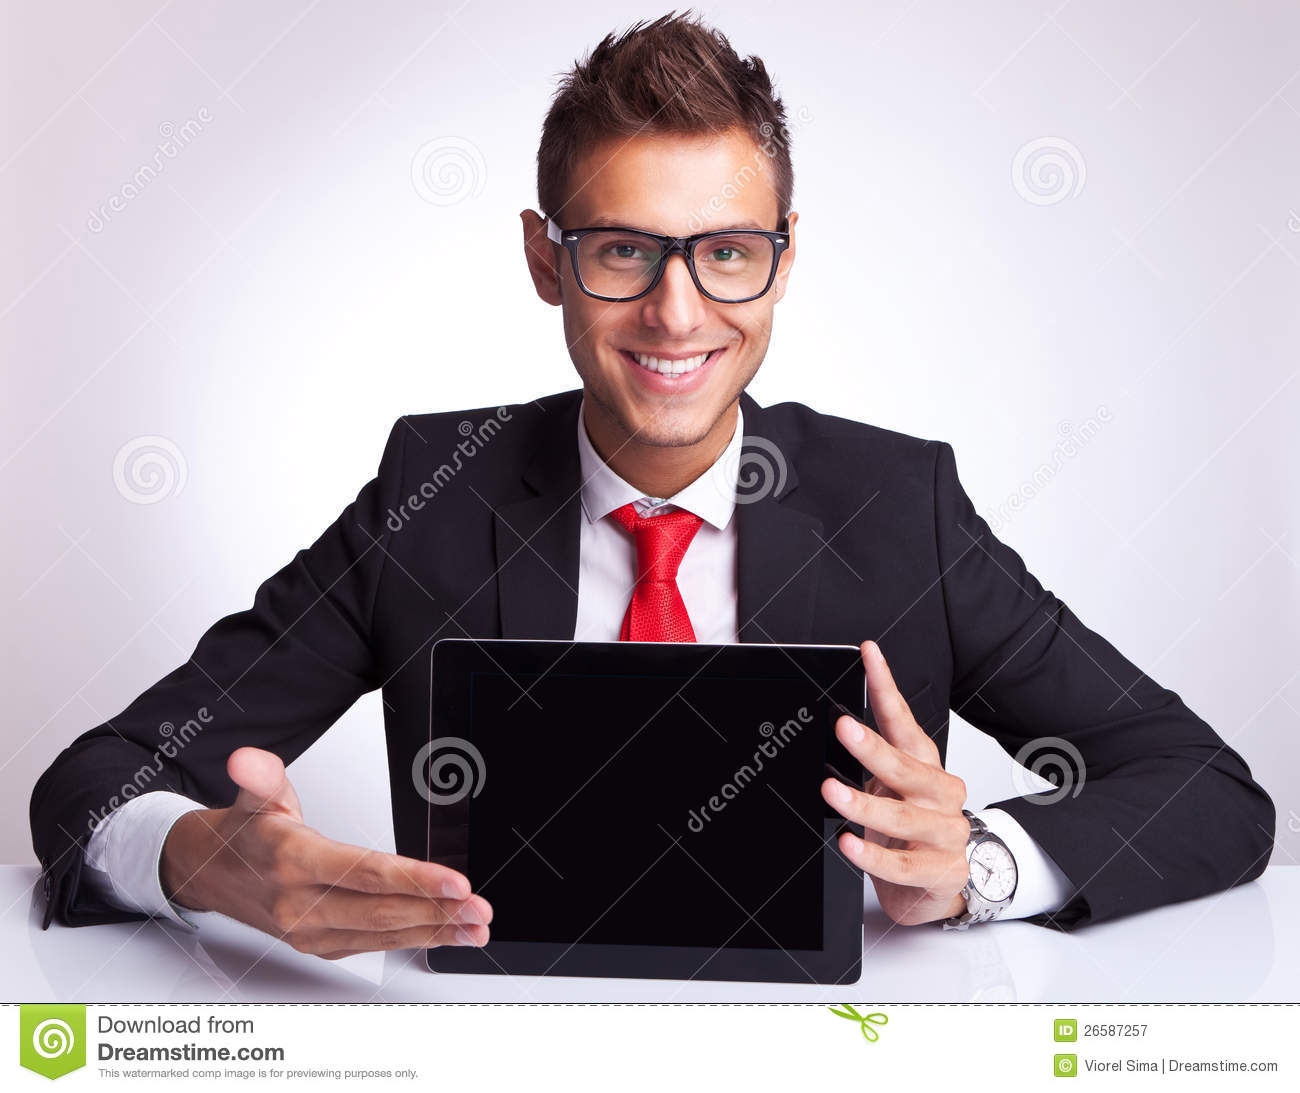 Business man presenting a touchscreen pad